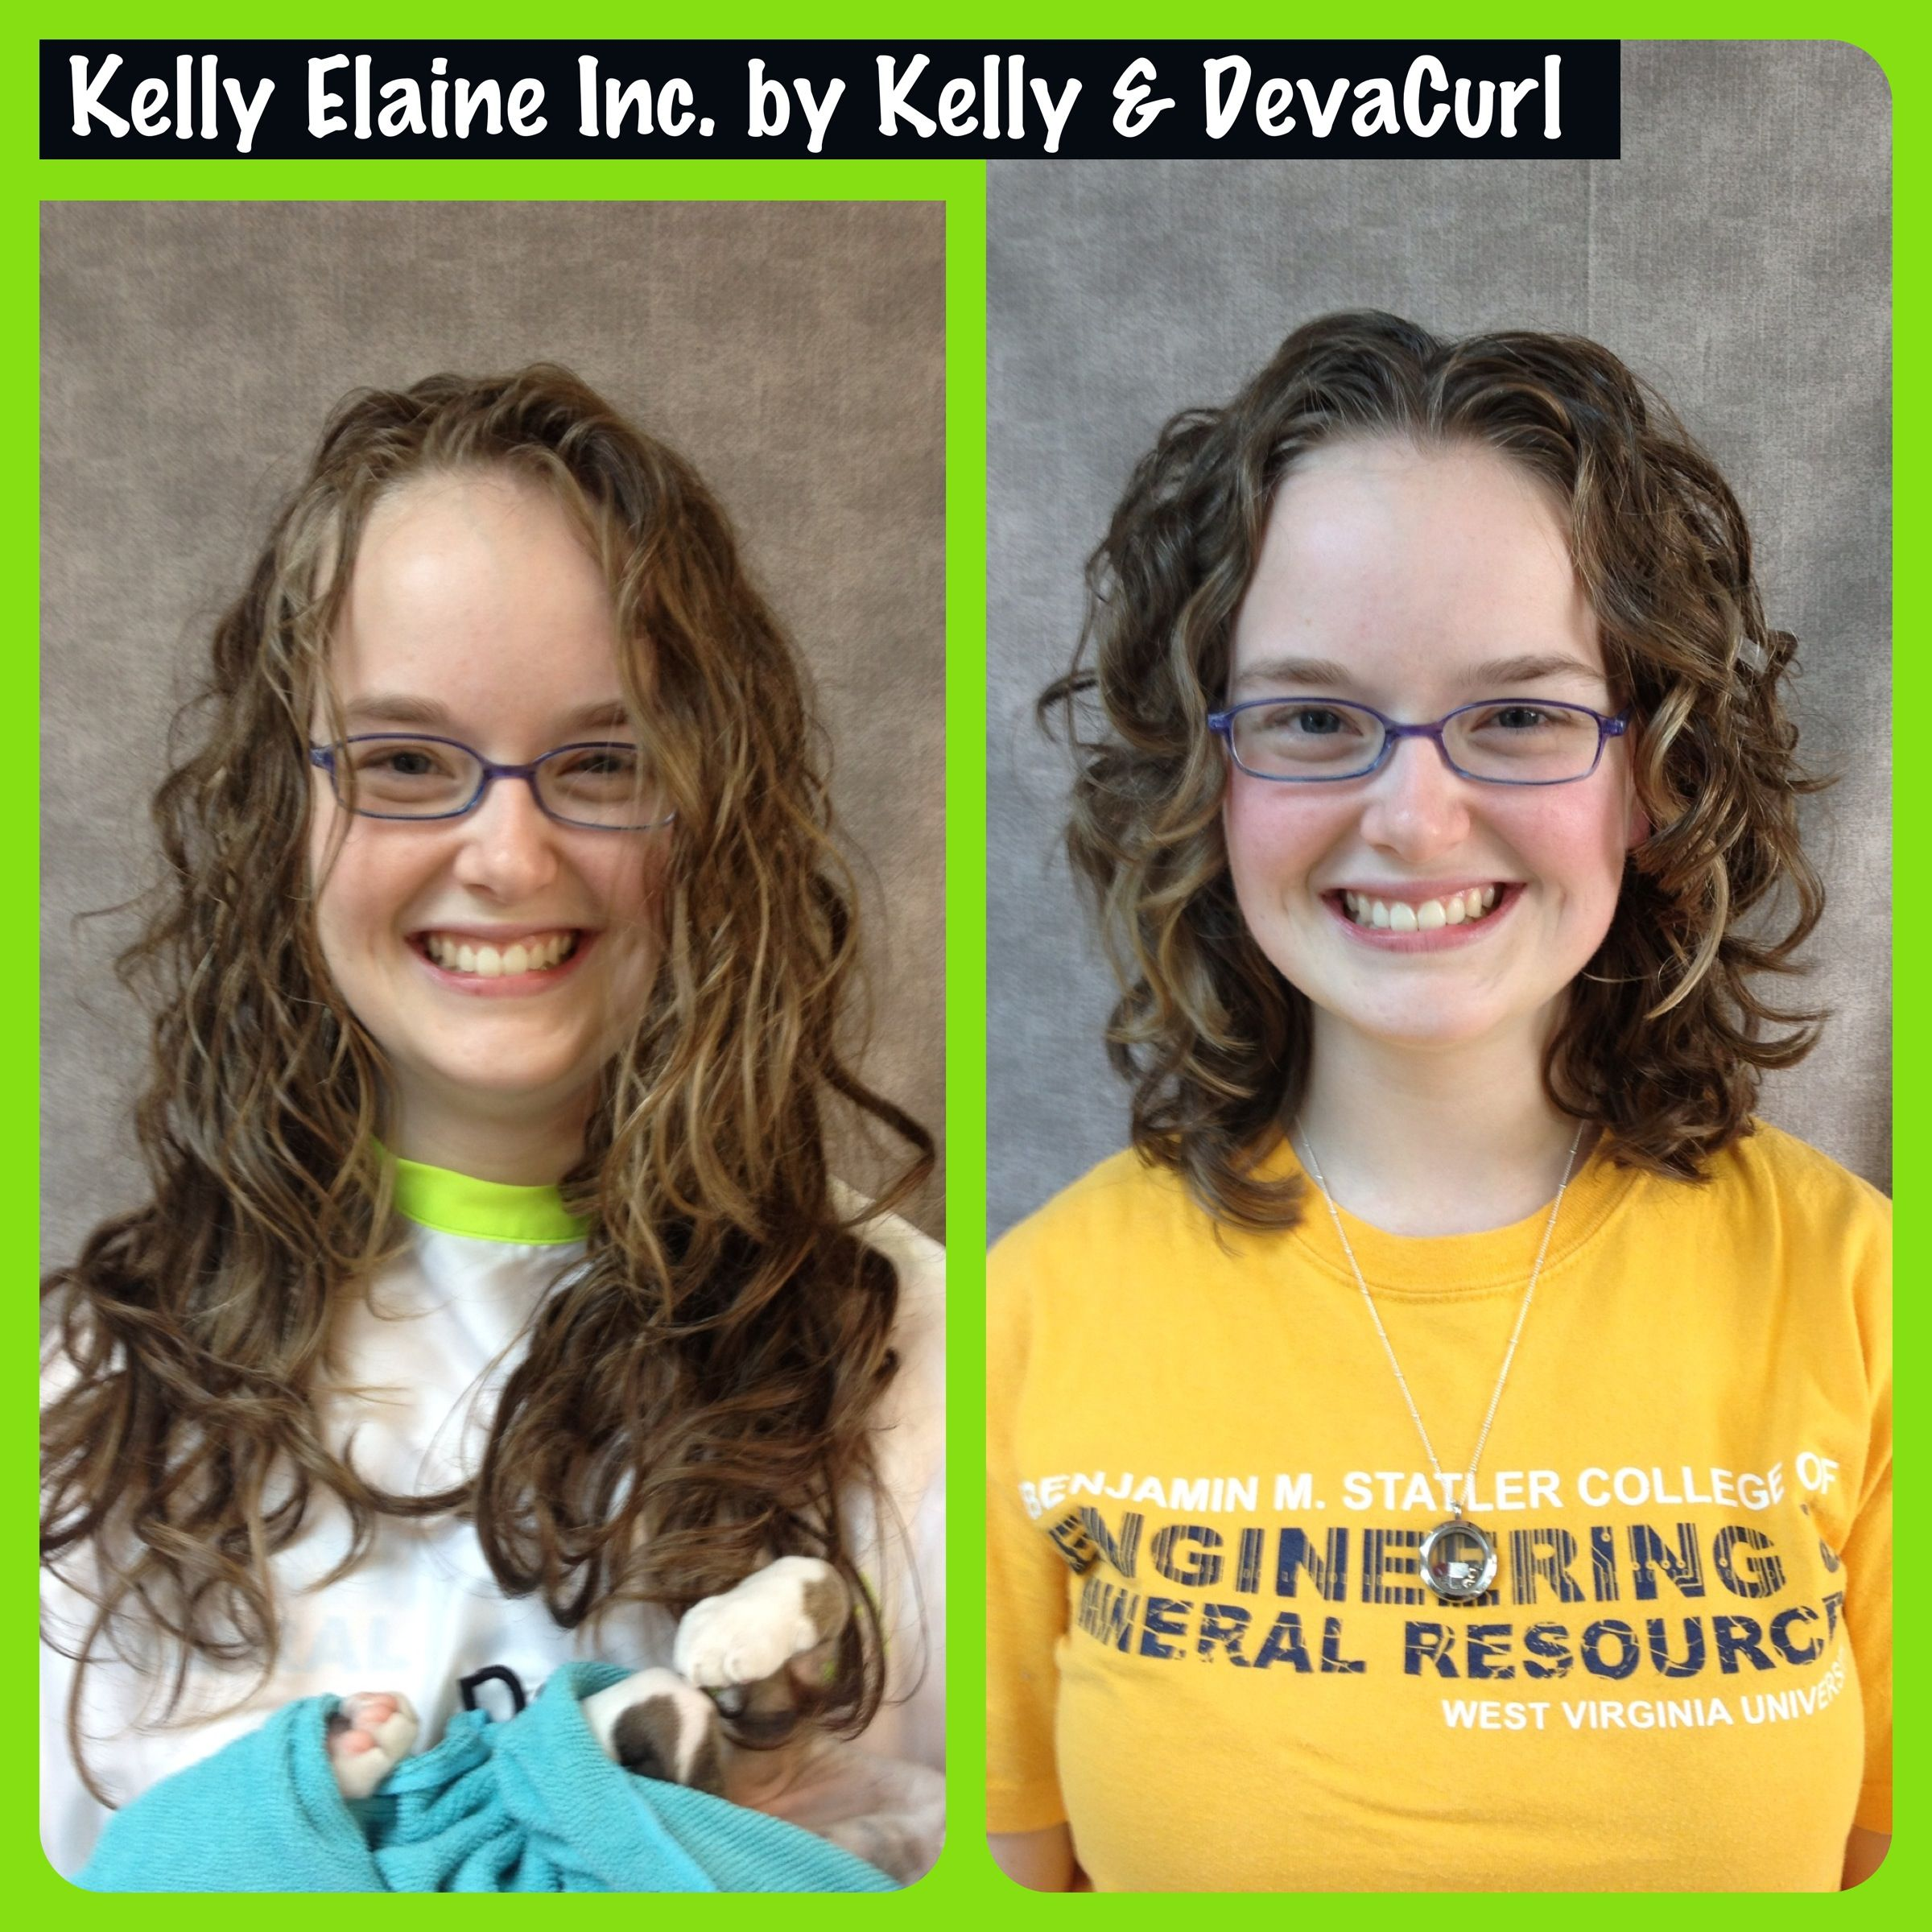 Devacurl hair cuts and the full line of devacurl products at kelly devacurl hair cuts and the full line of devacurl products at kelly elaine inc a curly hair salon and such pittsburgh pa 15235 amazing before and after winobraniefo Gallery